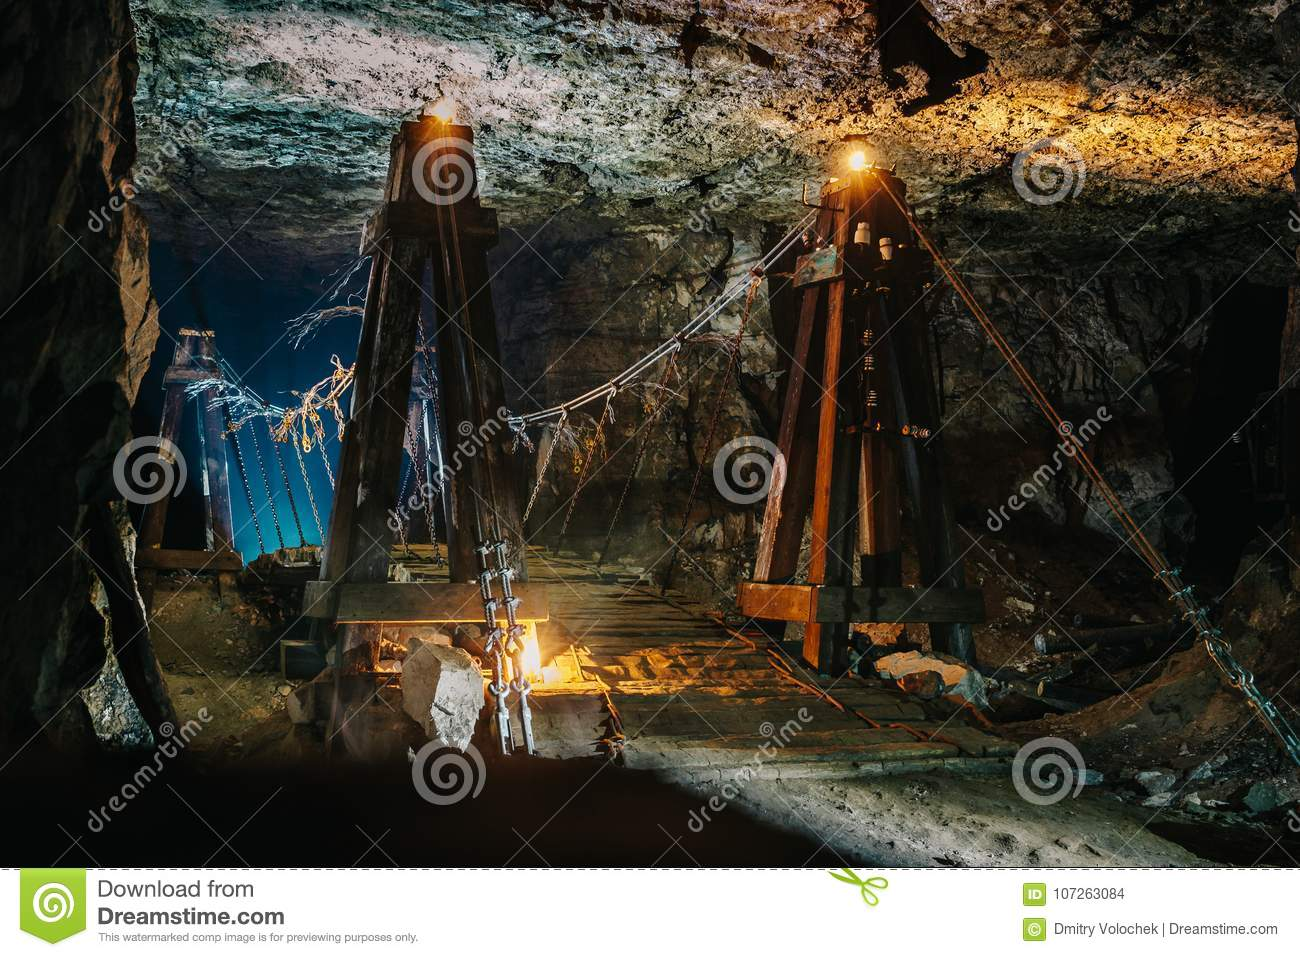 Old wooden bridge in scary abandoned underground limestone mine cave or tunnel or dark corridor with mysterious illumination